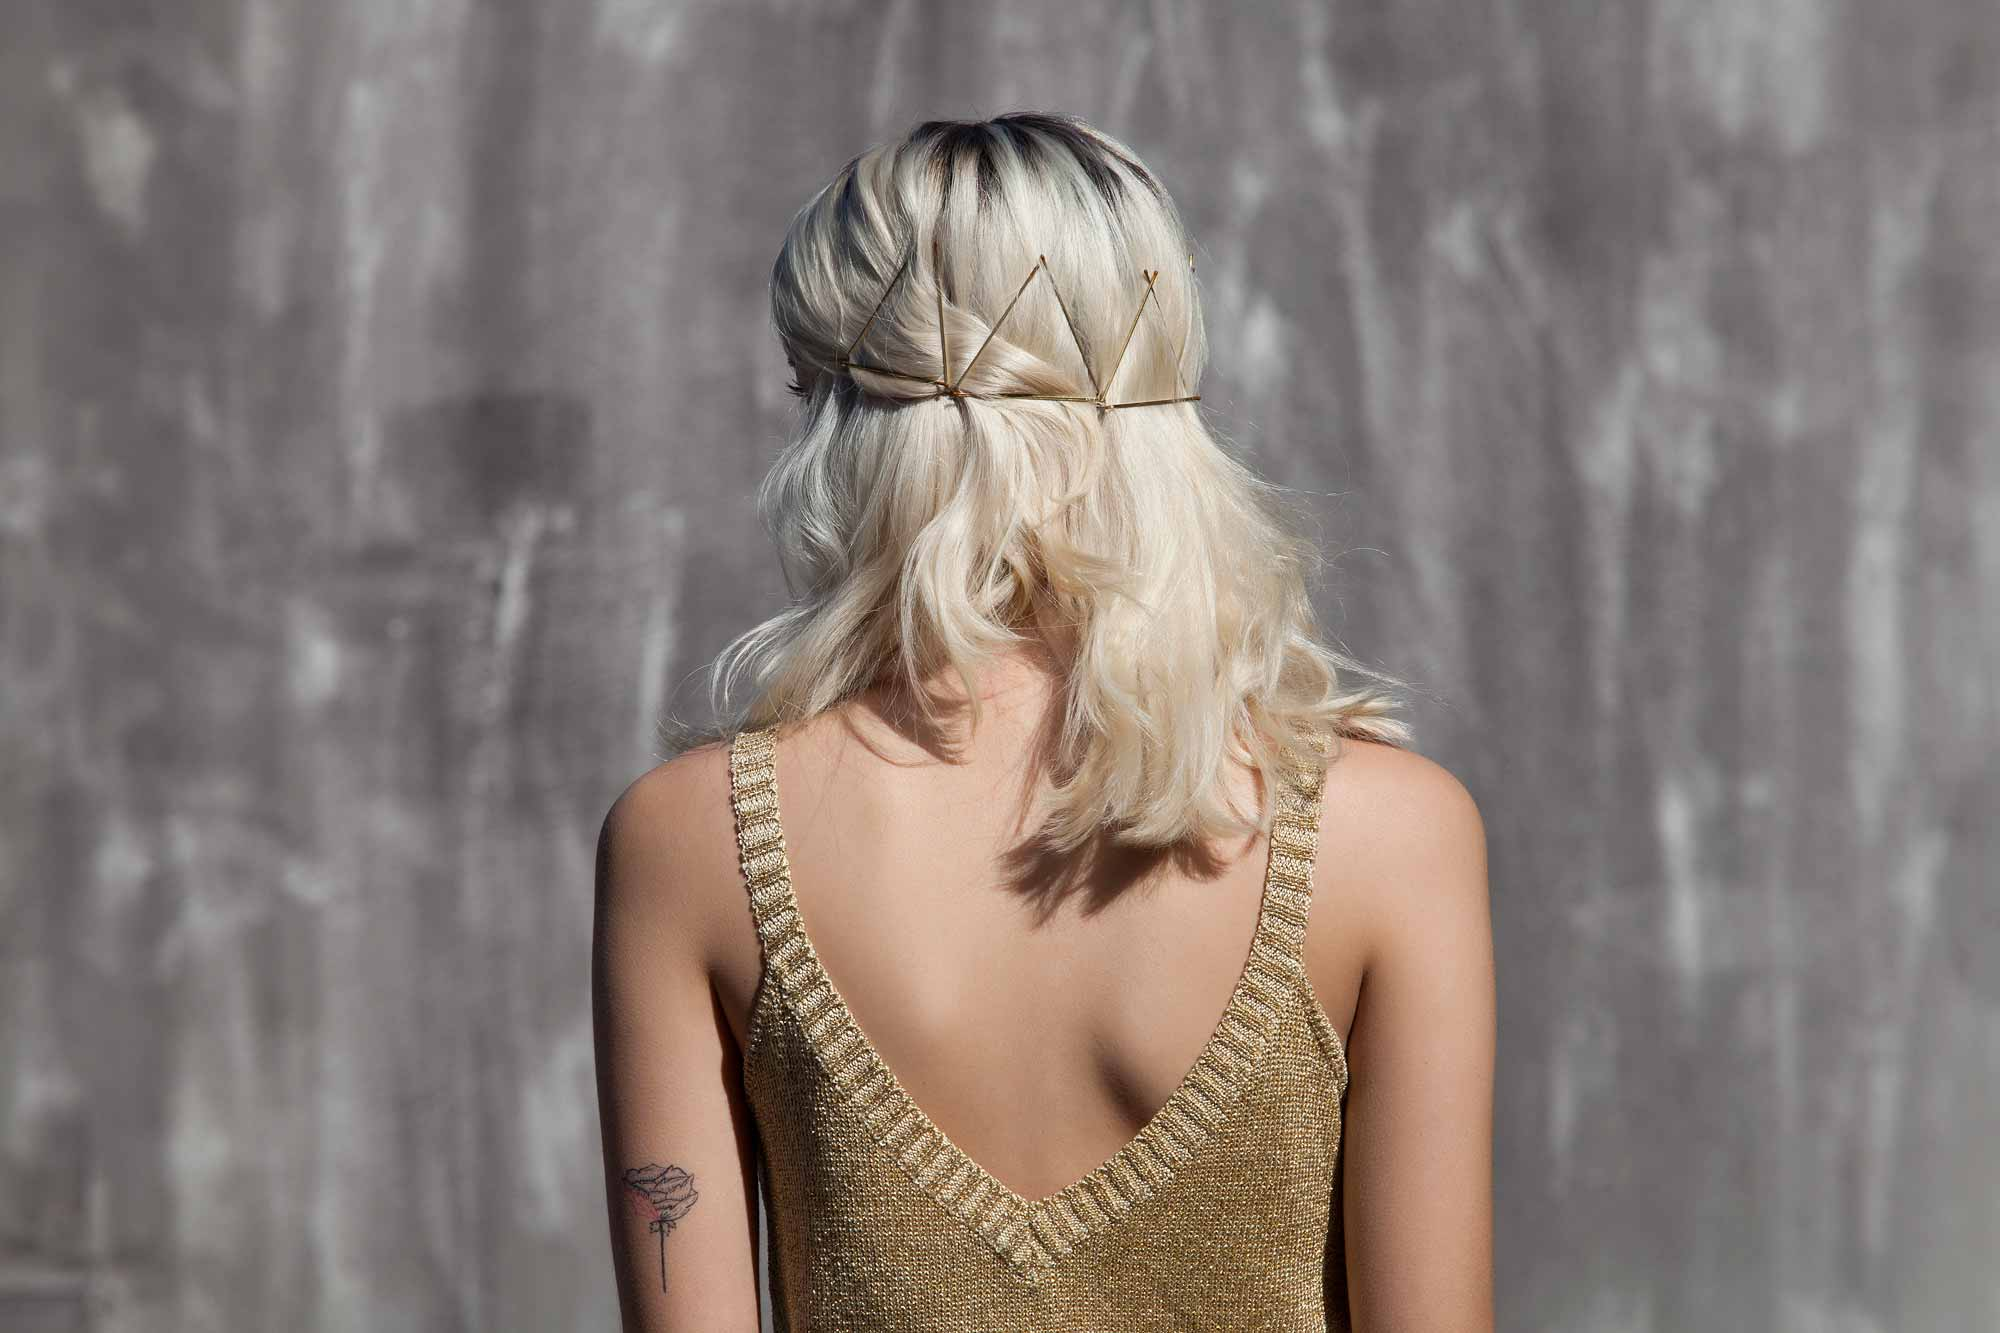 Bobby pin hairstyles: Close up backshot of a woman with messy bleach blonde medium hair styled with a triangle bobby pins, wearing a gold top and posing outside